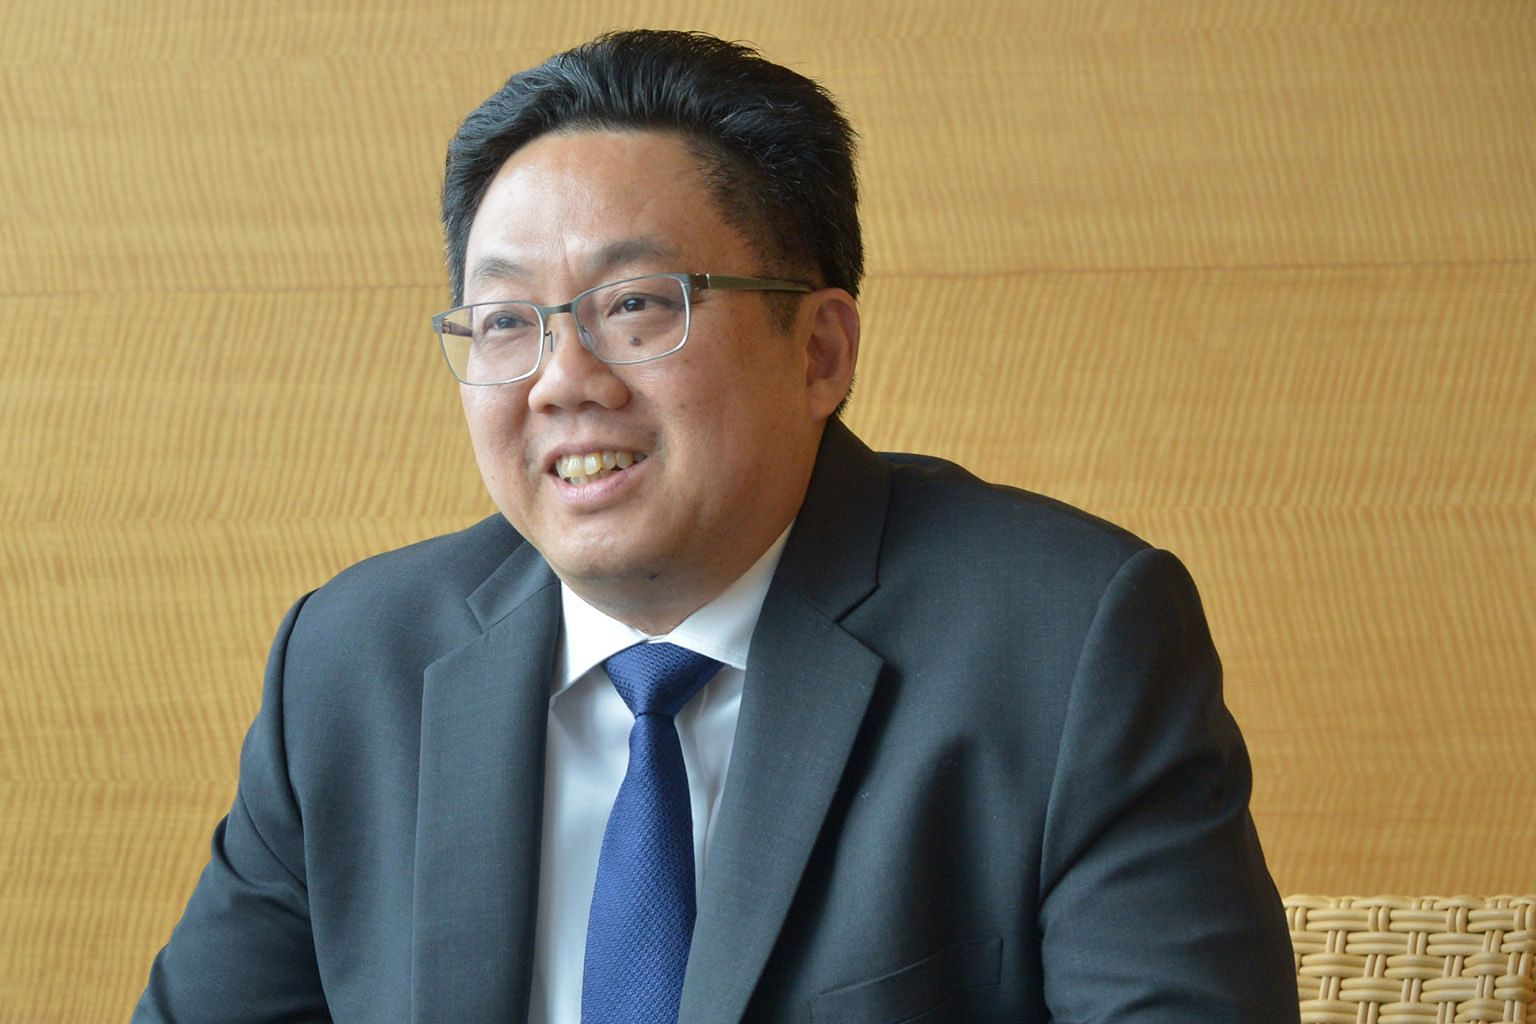 Mr Ng Yat Chung, 55, the former chief executive of Neptune Orient Lines, will be appointed SPH's executive director on July 1 and assume the post of CEO on Sept 1.